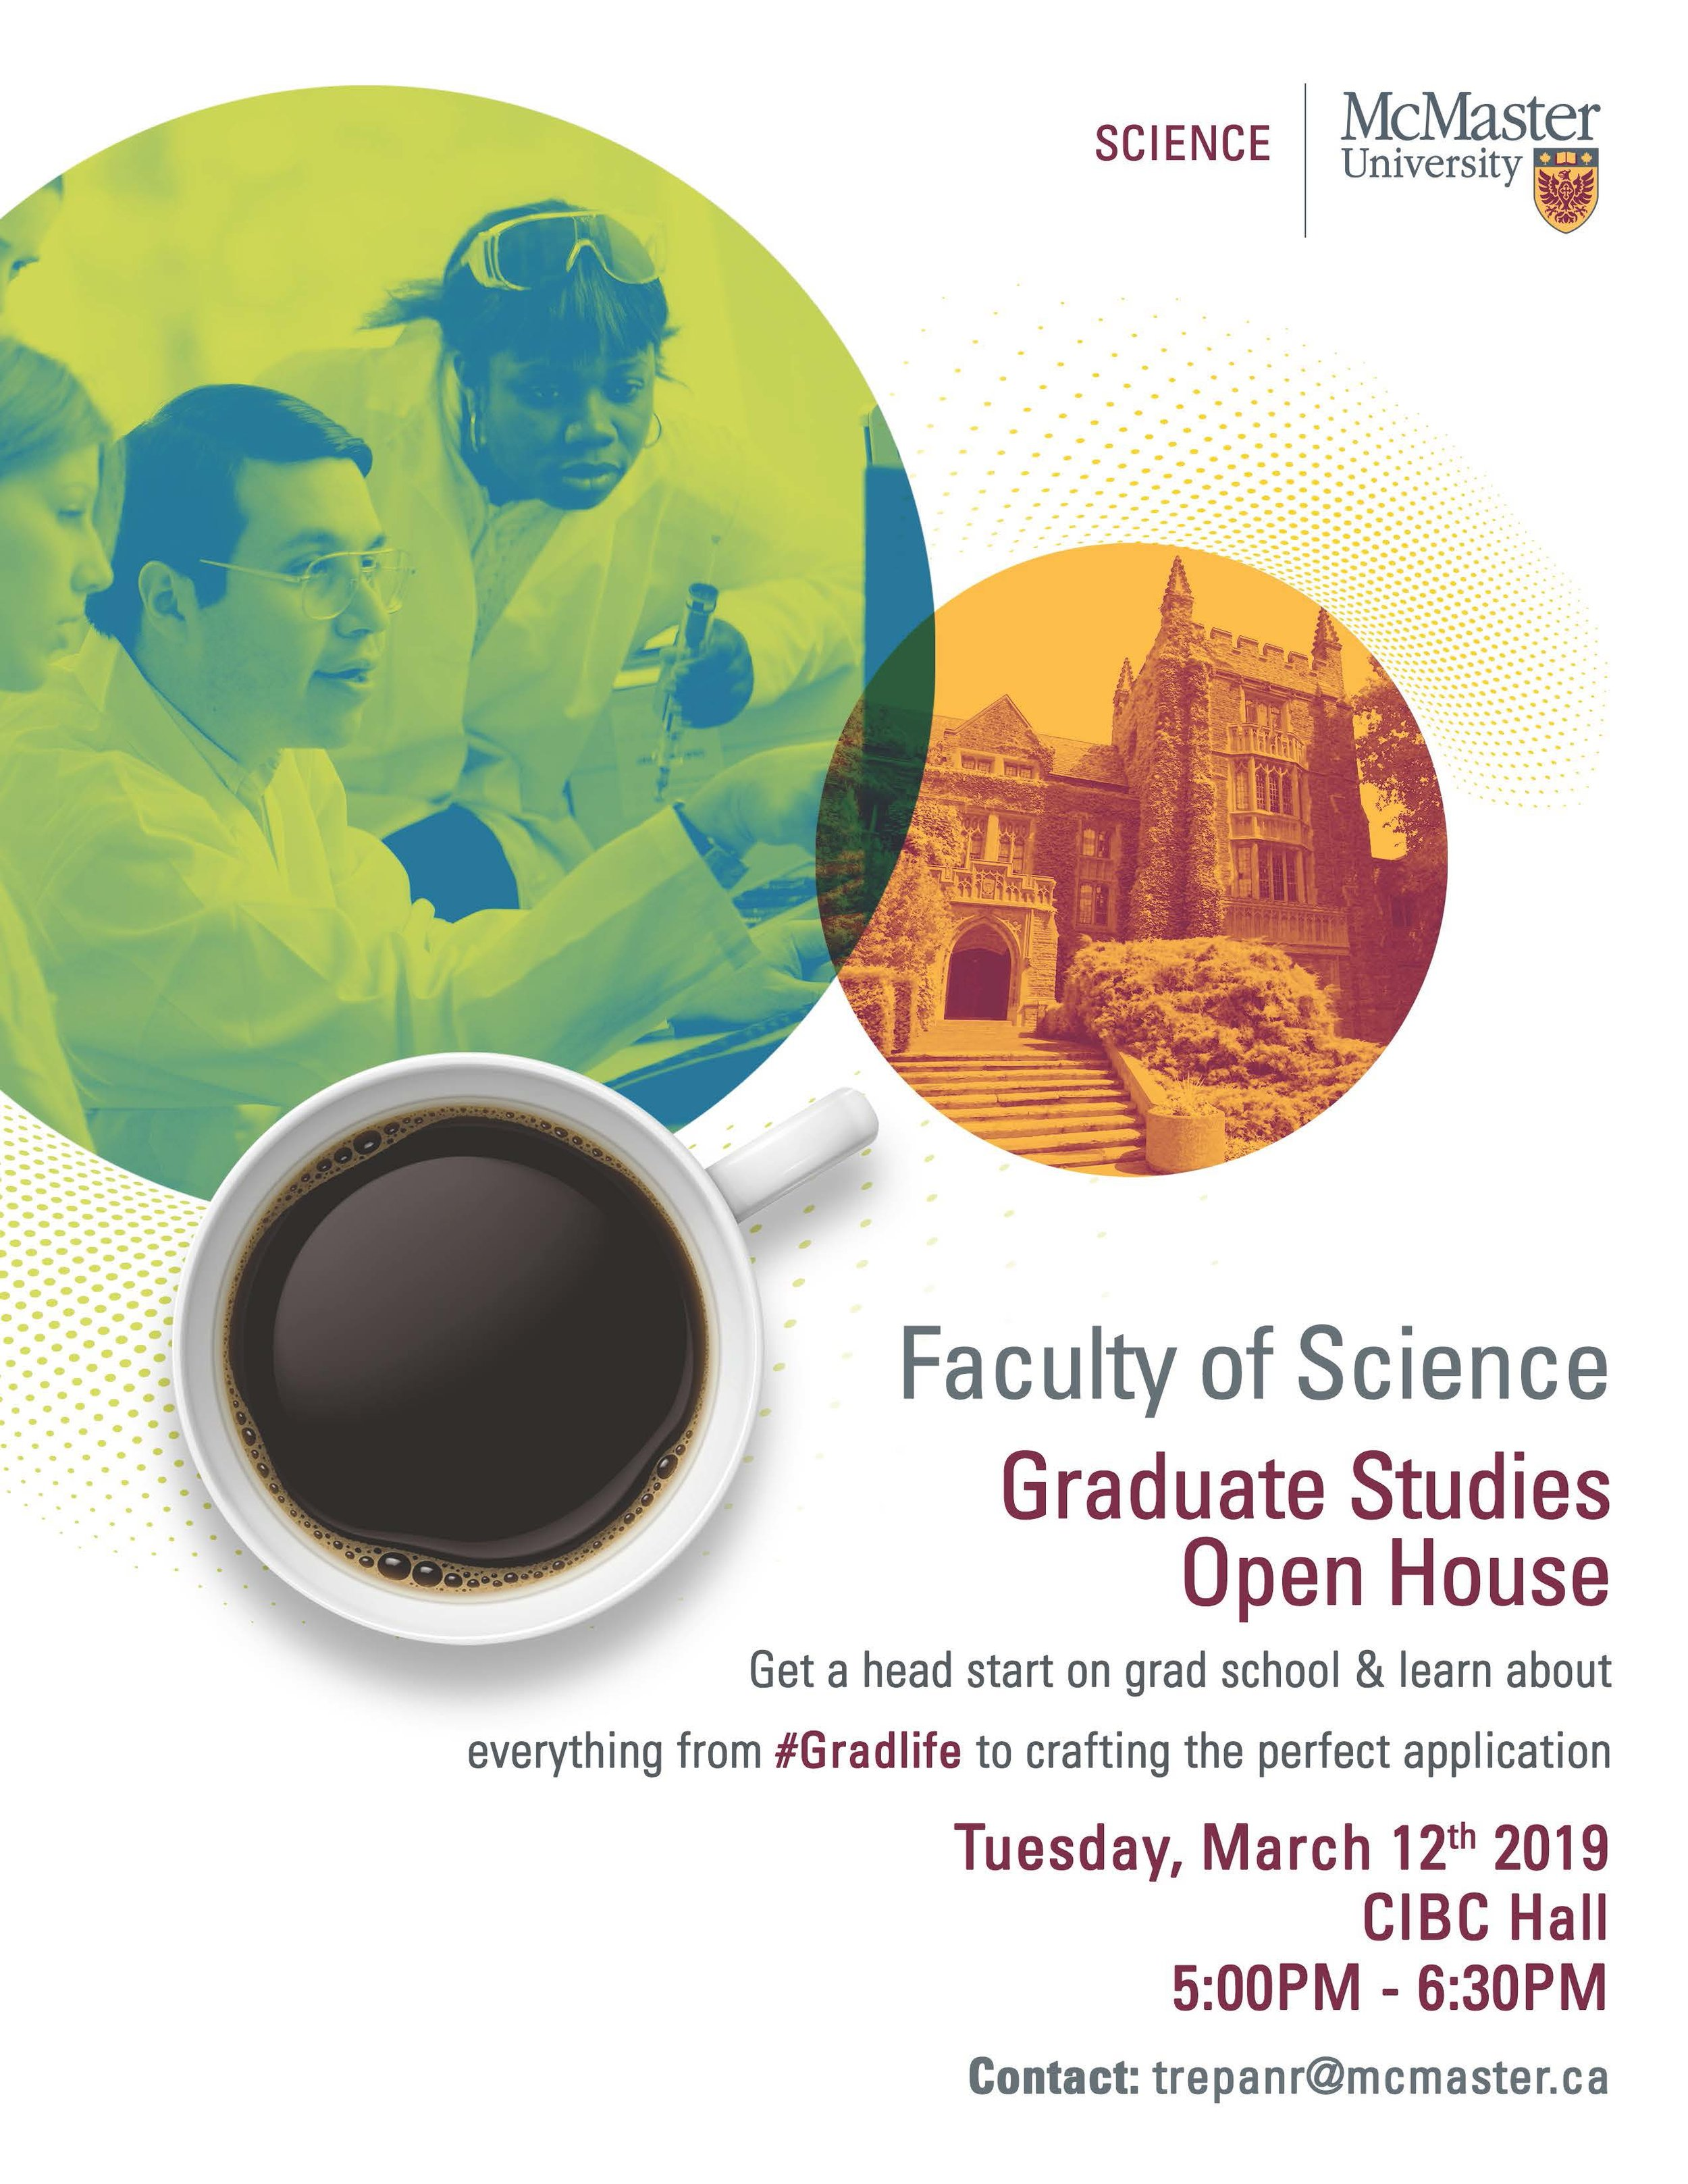 Grad Studies - Open House Poster.jpg